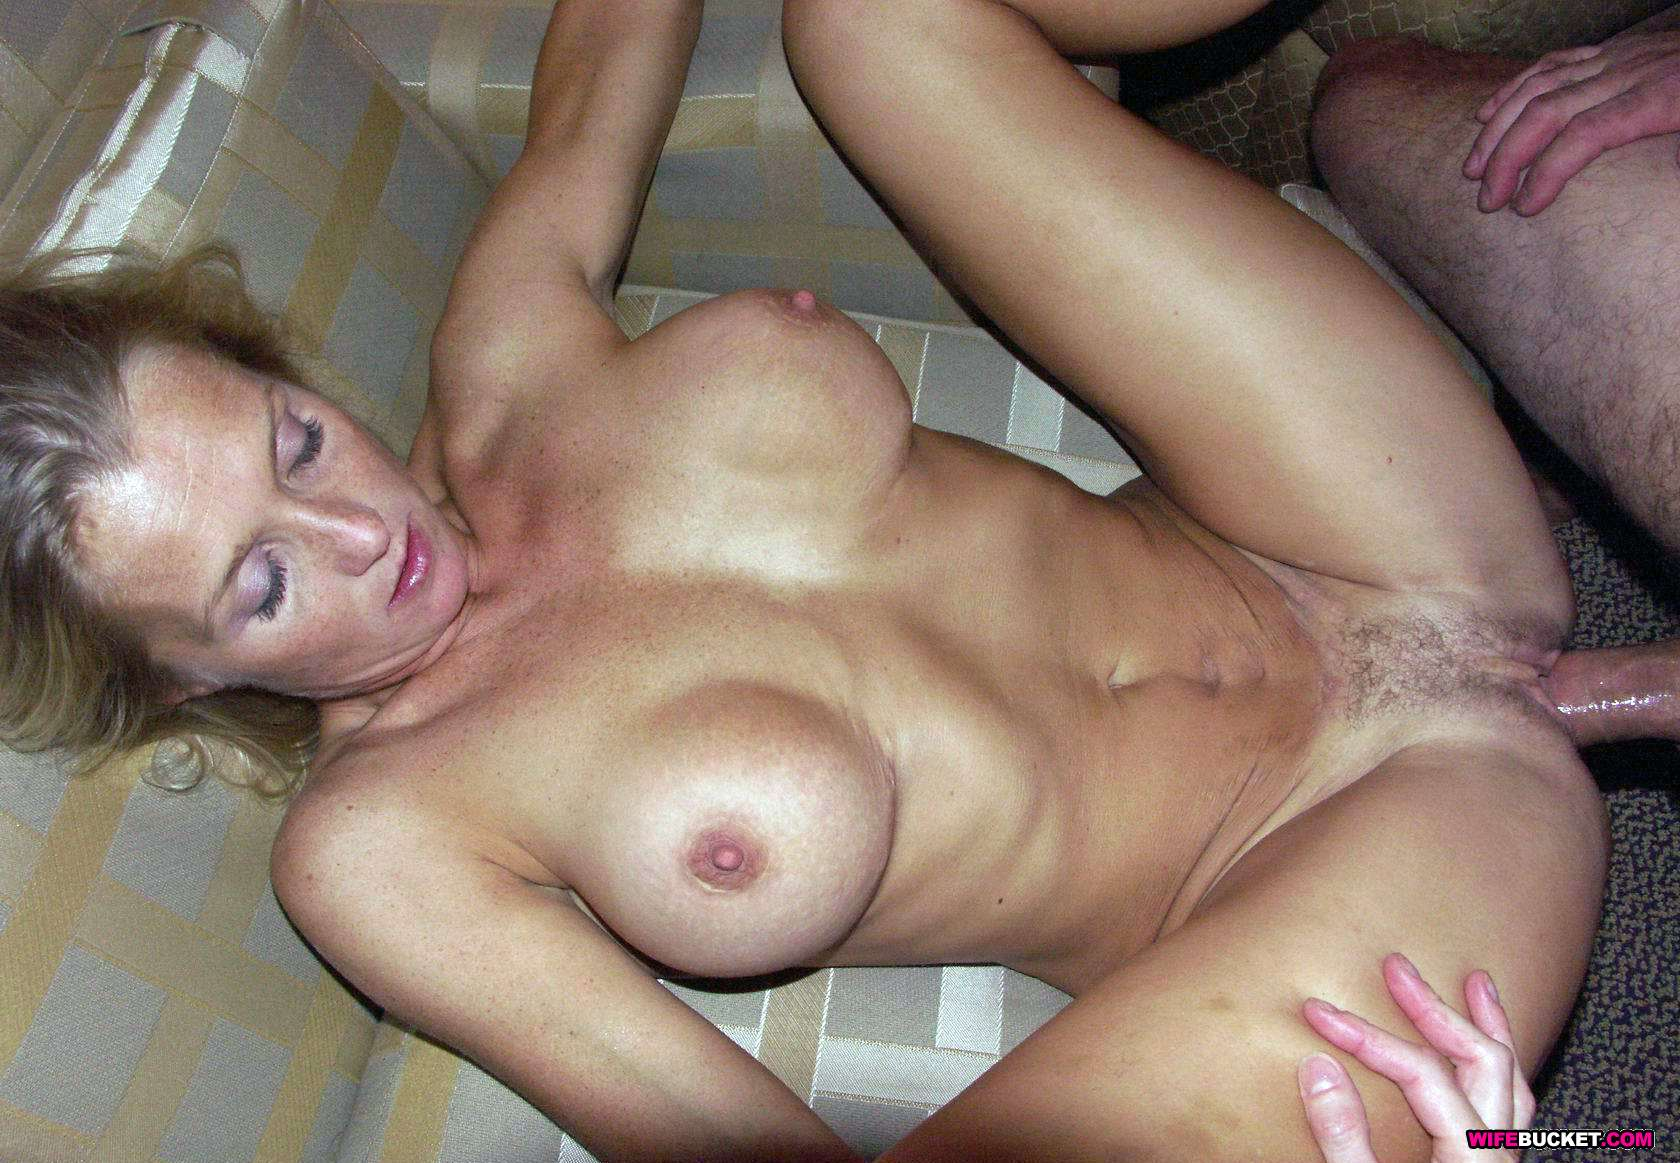 Incredibly sexy milf blowjob on amateur